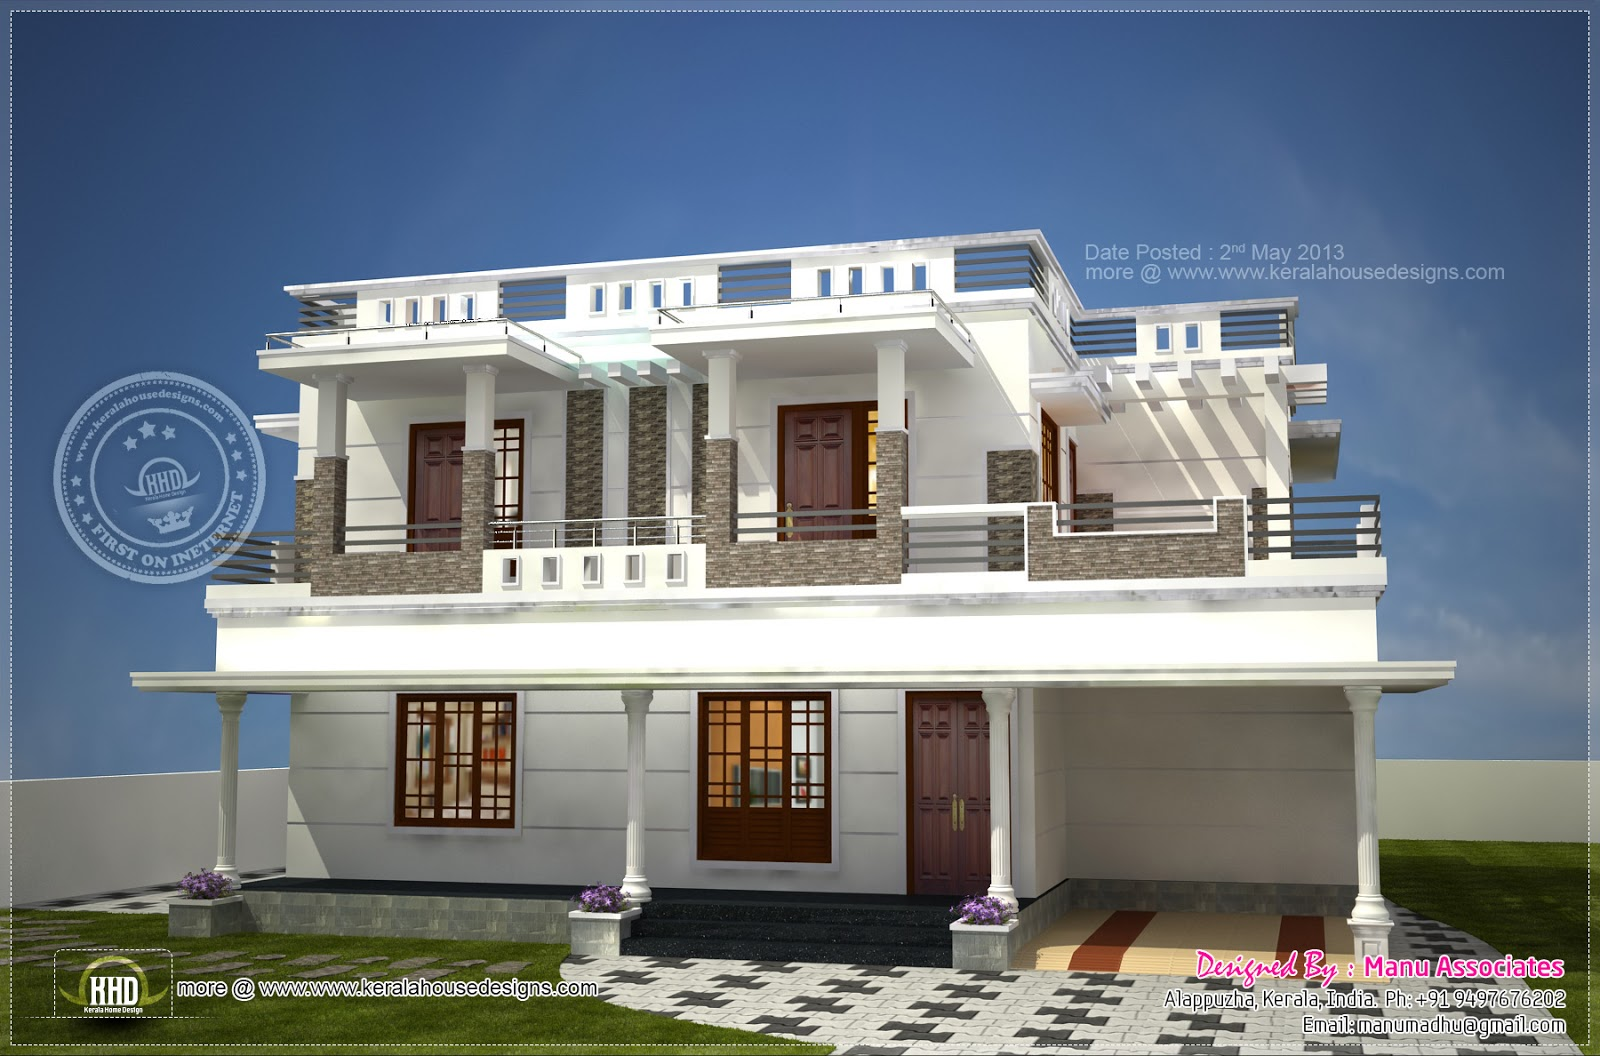 Modern home design in alappuzha kerala house design plans for House design modern style